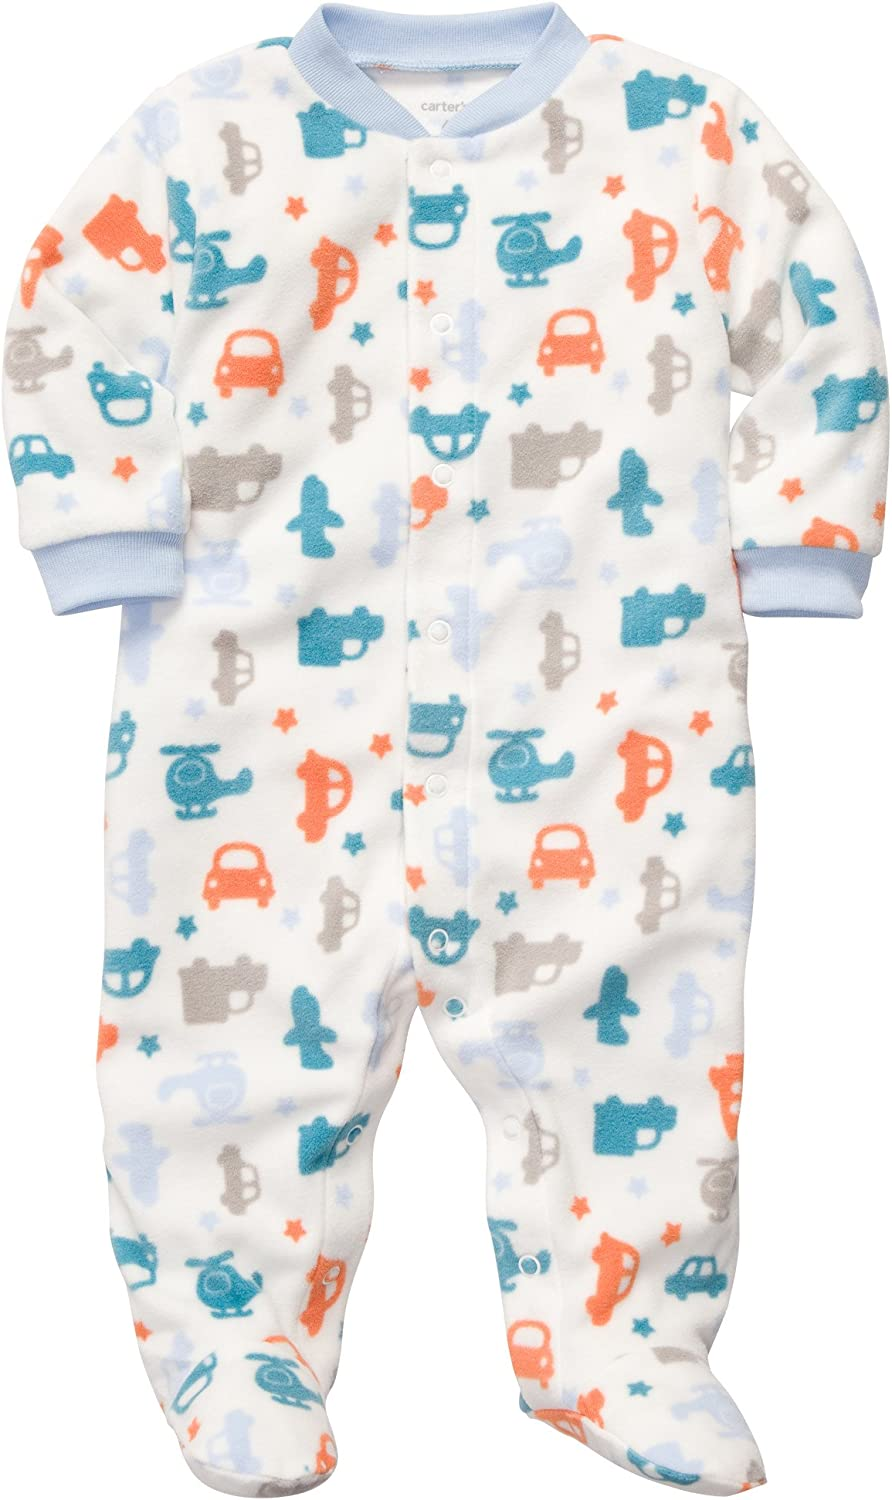 Carter's Baby Boys Micro Snap Transportation - Multi 6M Al sold Excellence out.